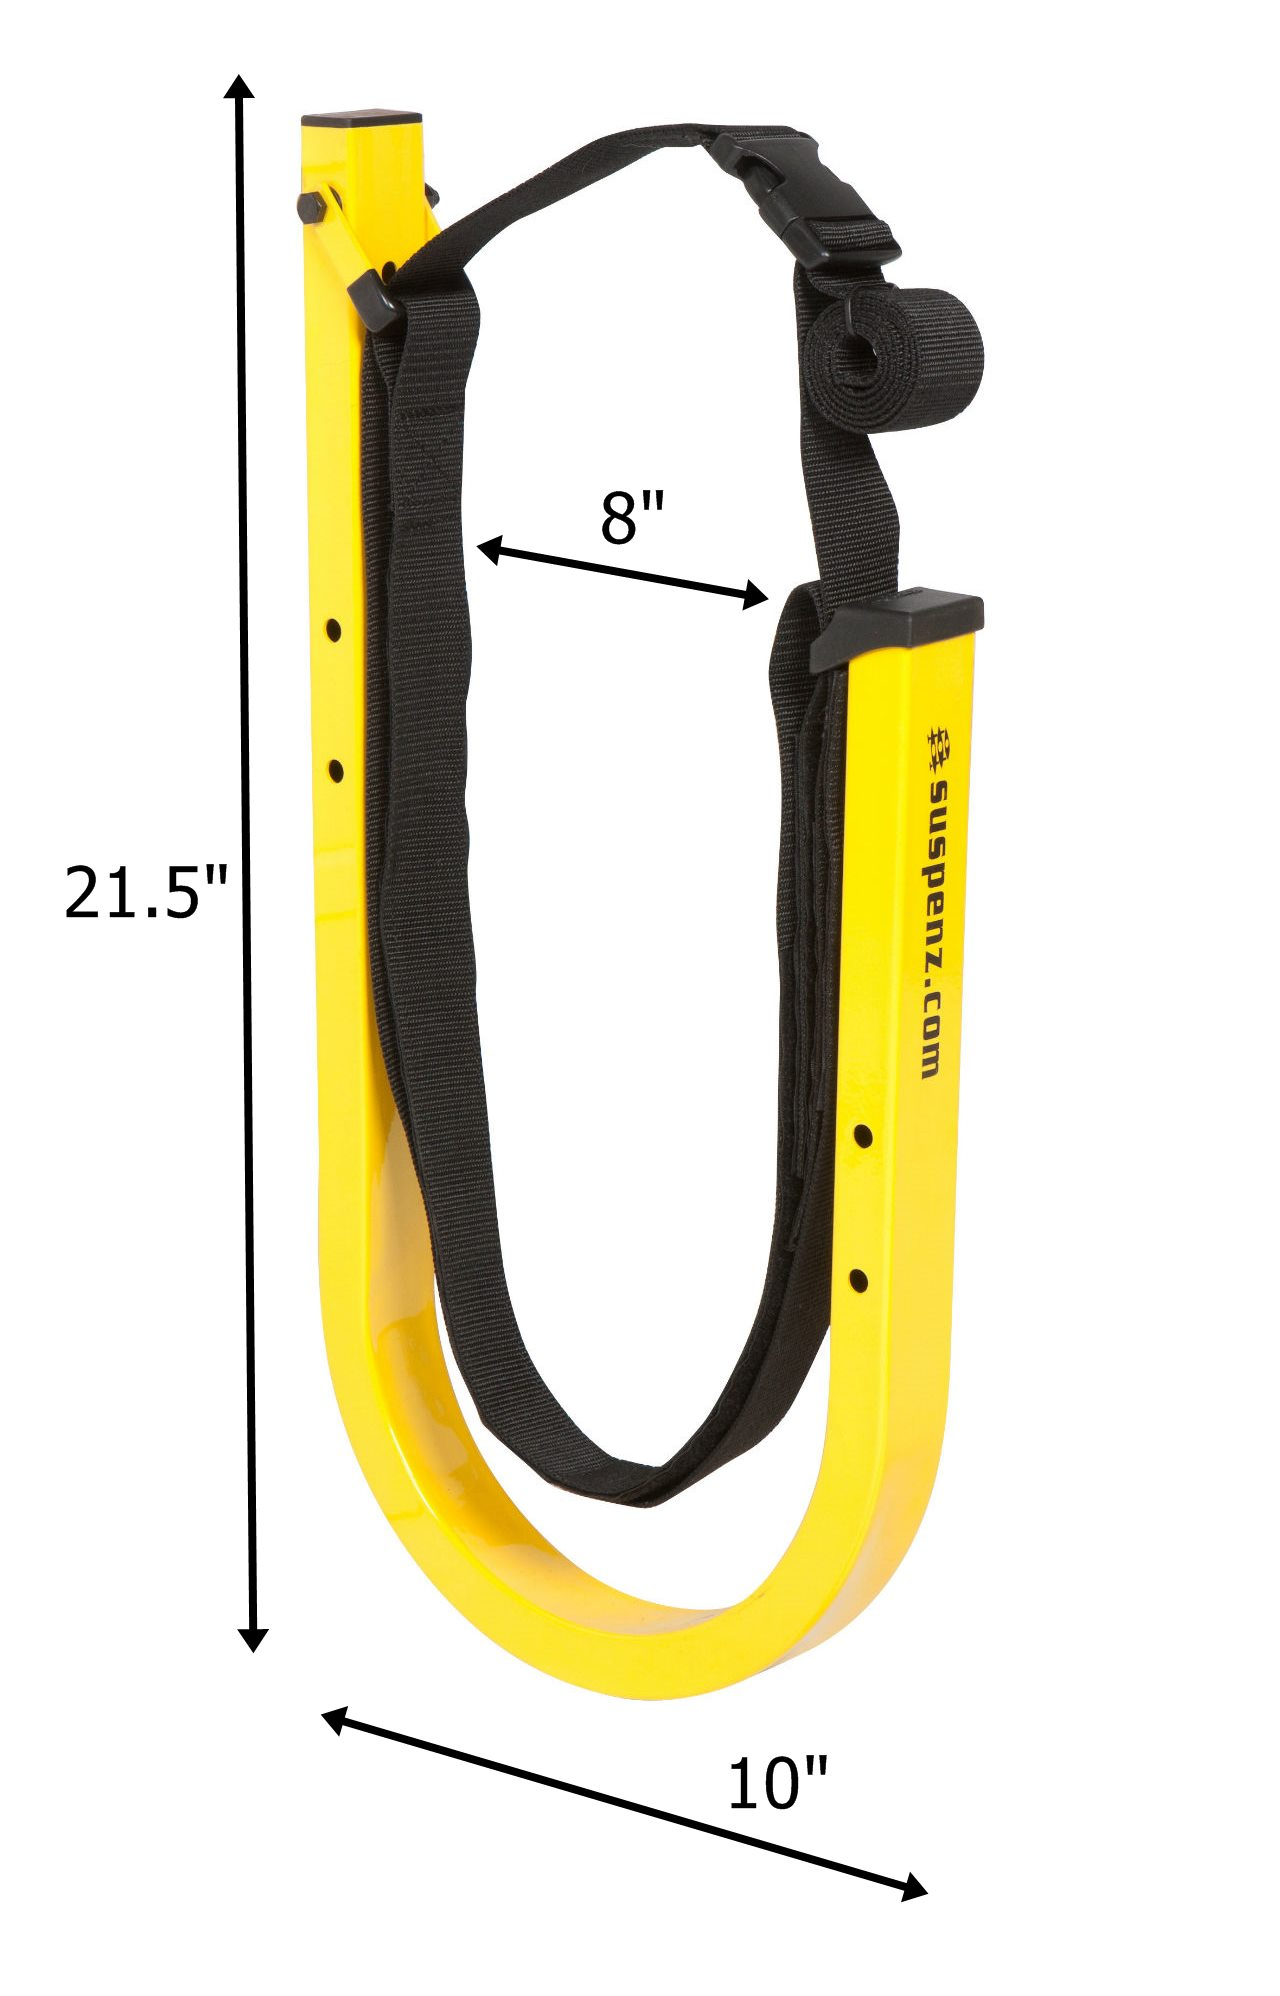 suspenz-sup-wall-rack-dimensions.jpg